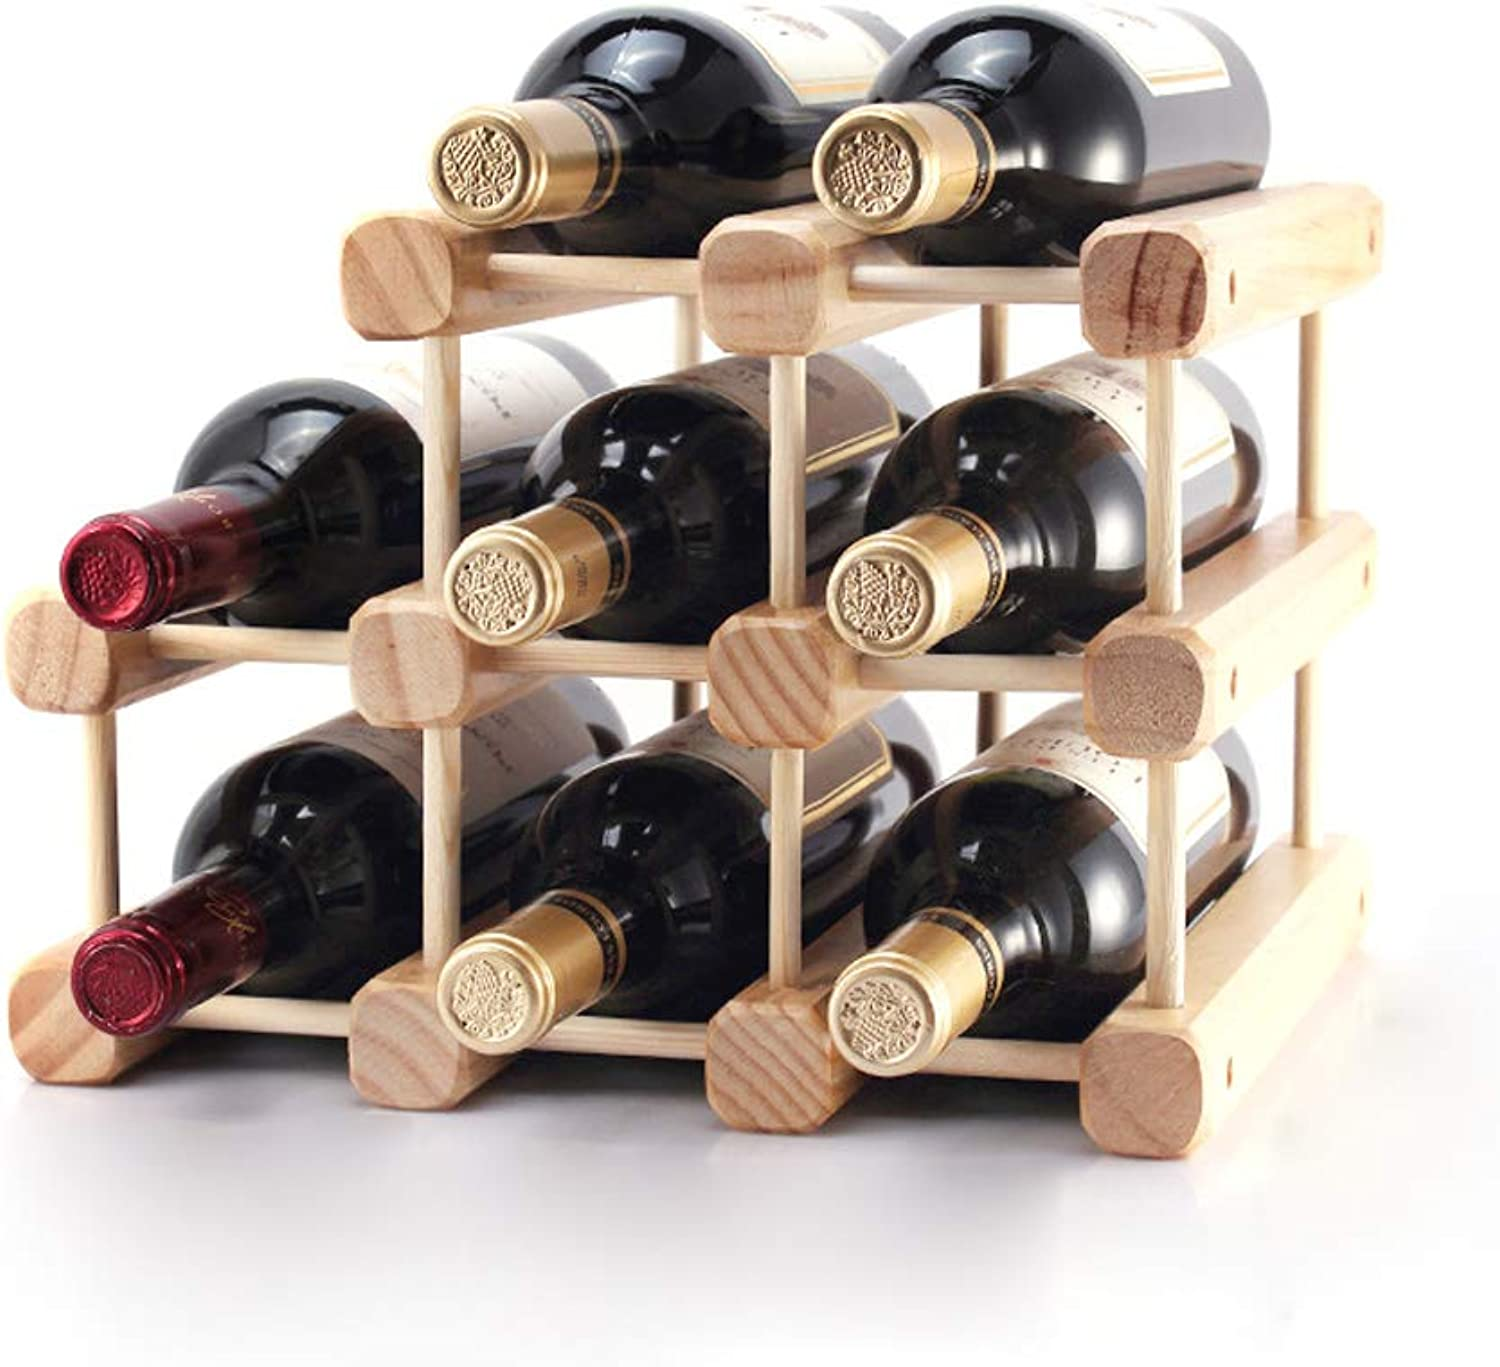 Solid Wood Wine Rack Creative Wooden Wine Racks Can Be Assembled Simple 32x26x28cm